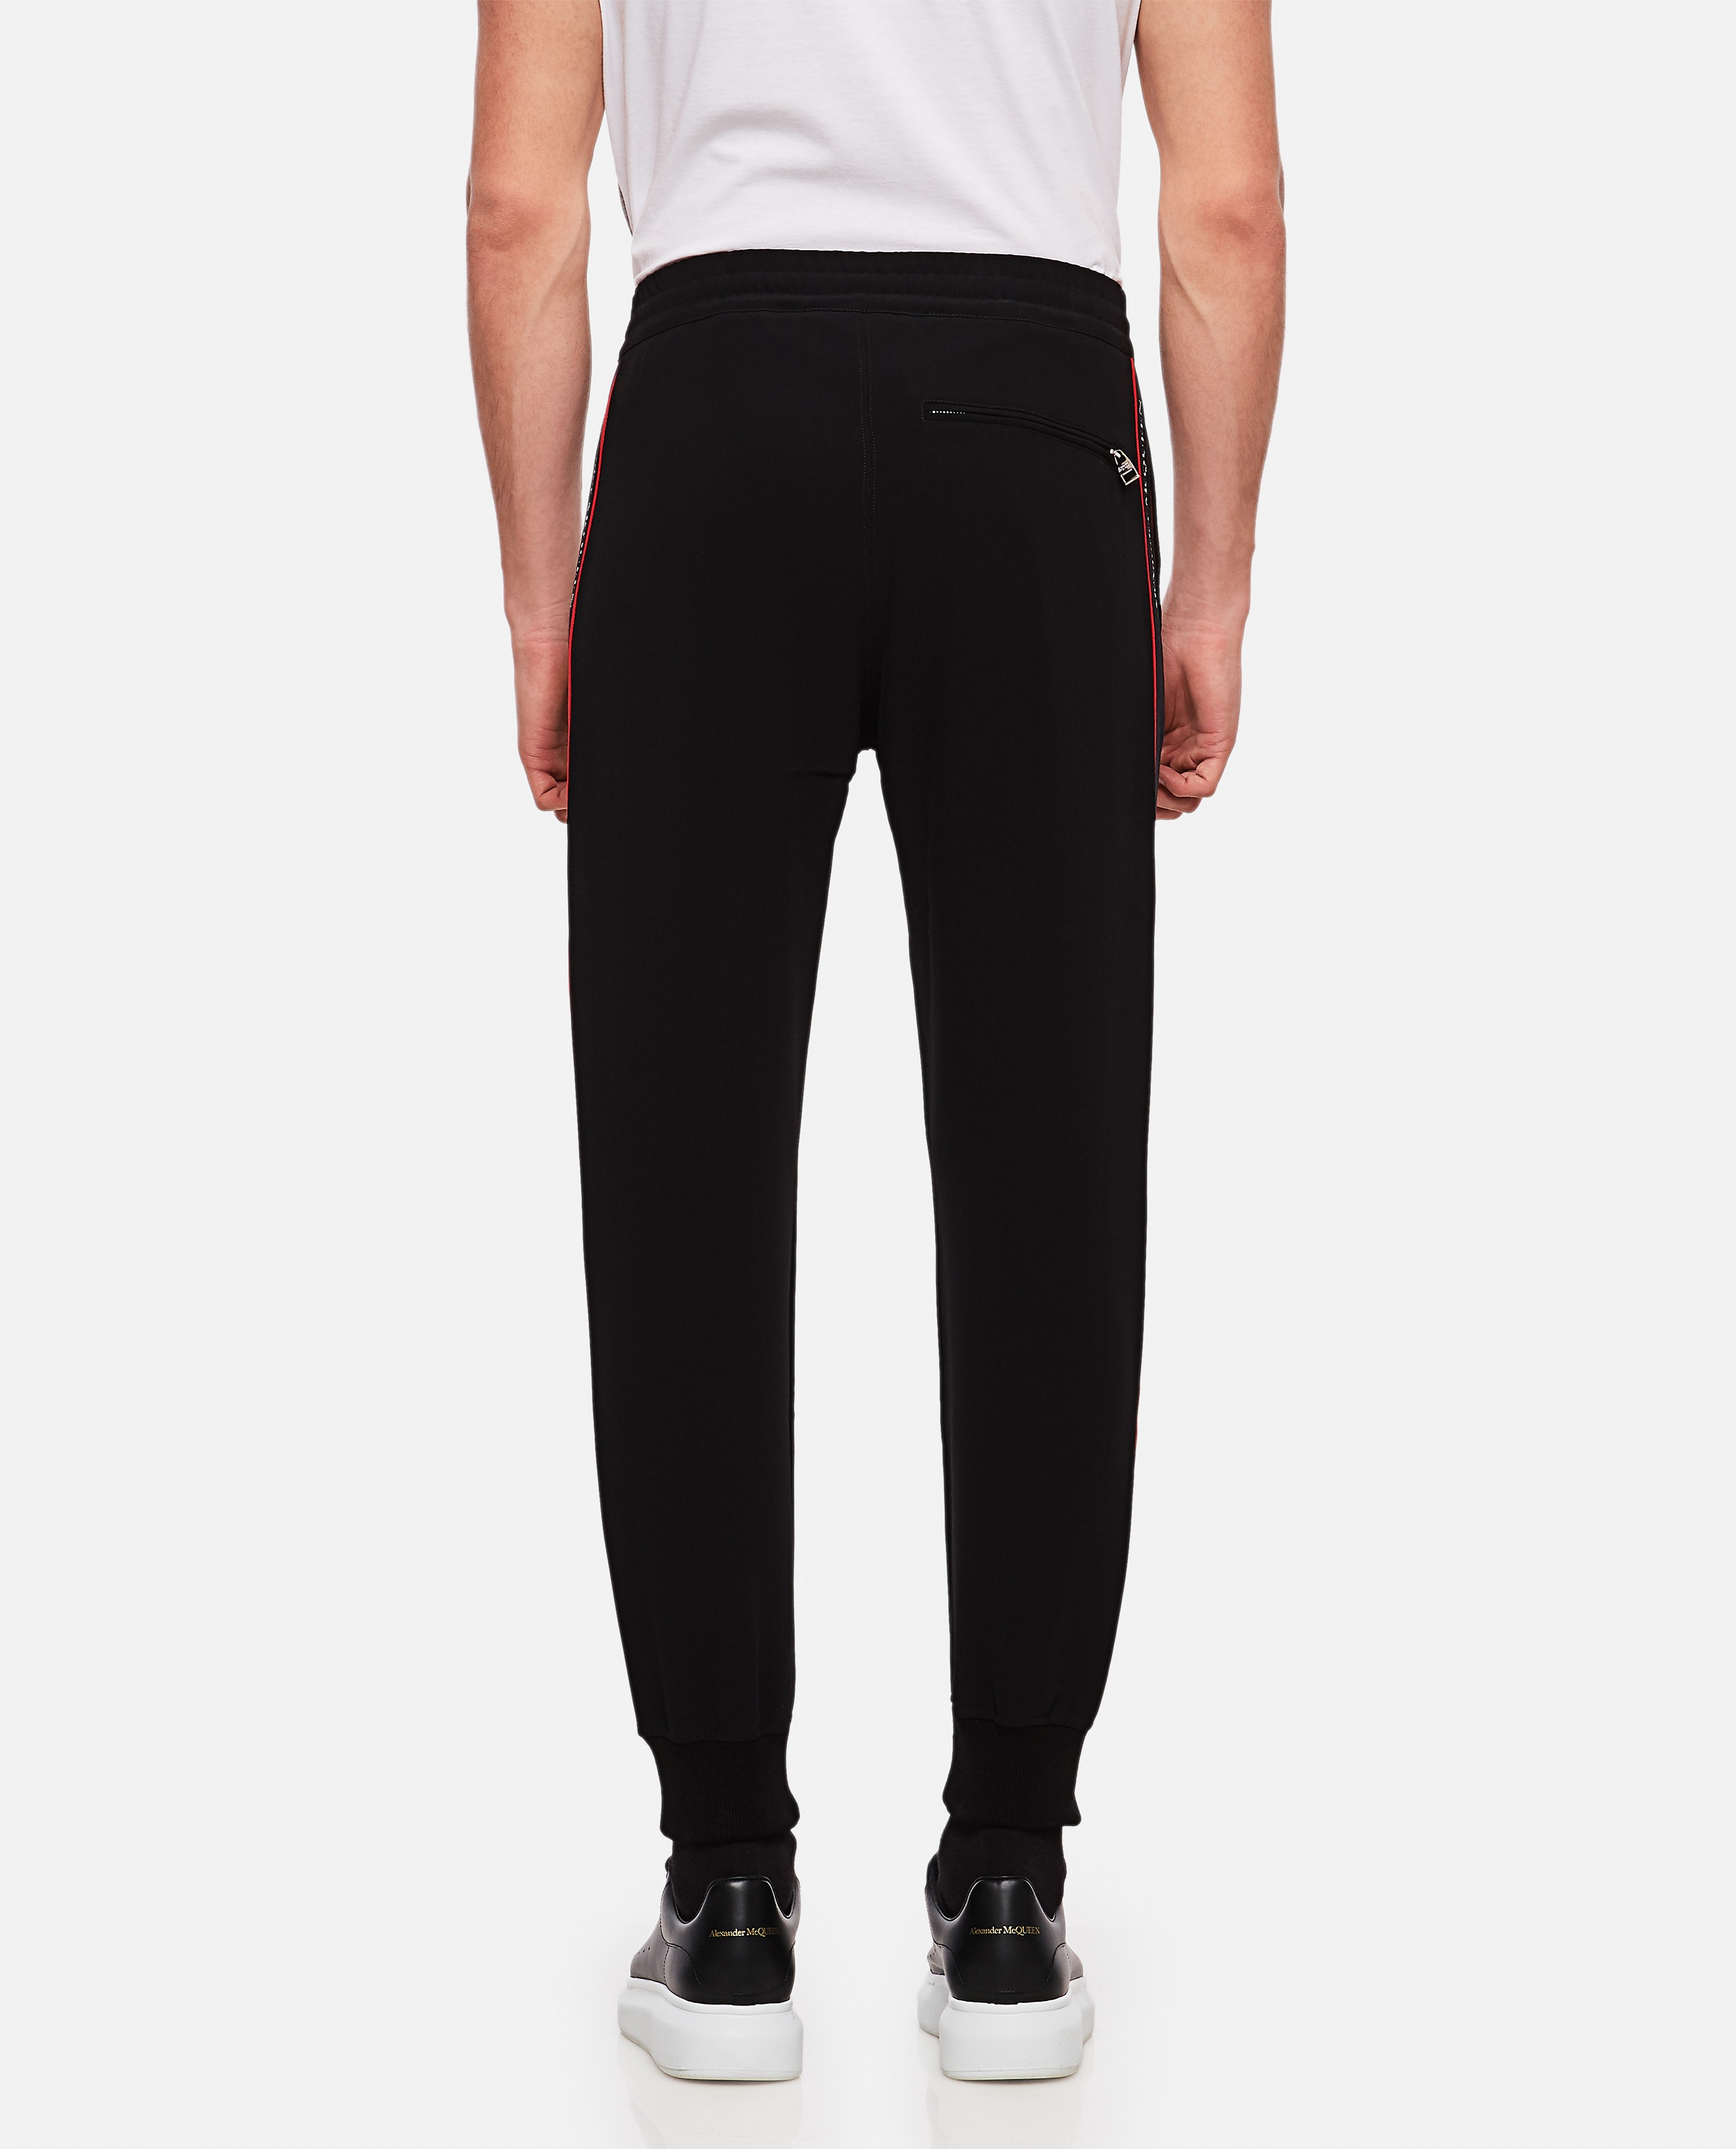 Sports trousers with side tape Men Alexander McQueen 000214950031908 3